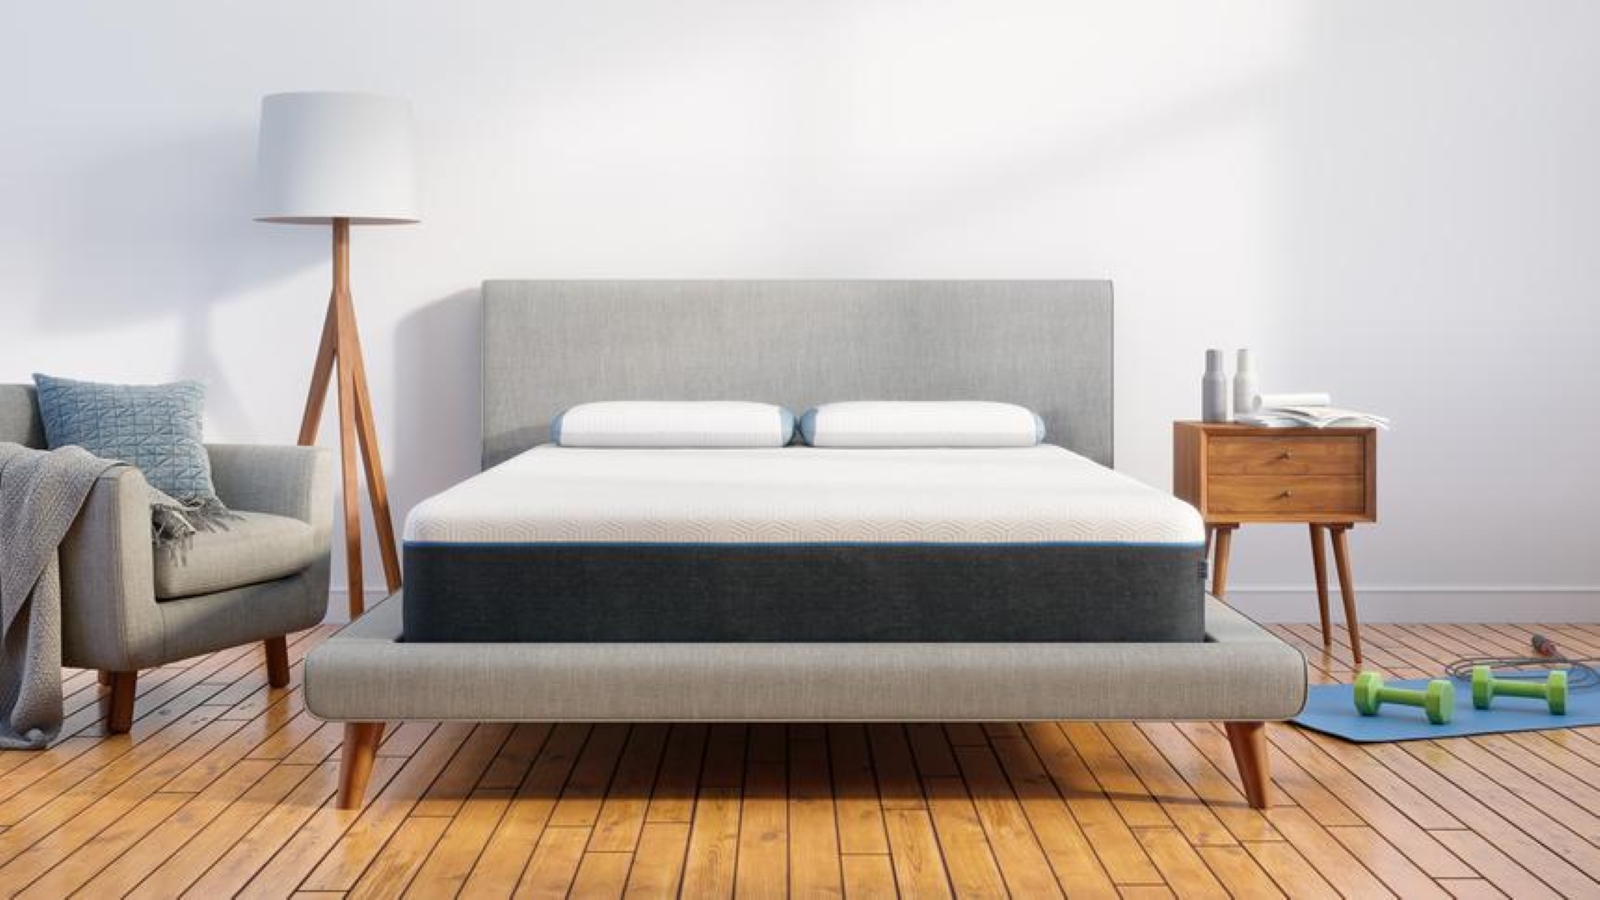 BEAR Mattress on a gray bedframe sitting on a woodfloor with a gray chair and floor lamp on the left and a night stand and workout equipment on the right